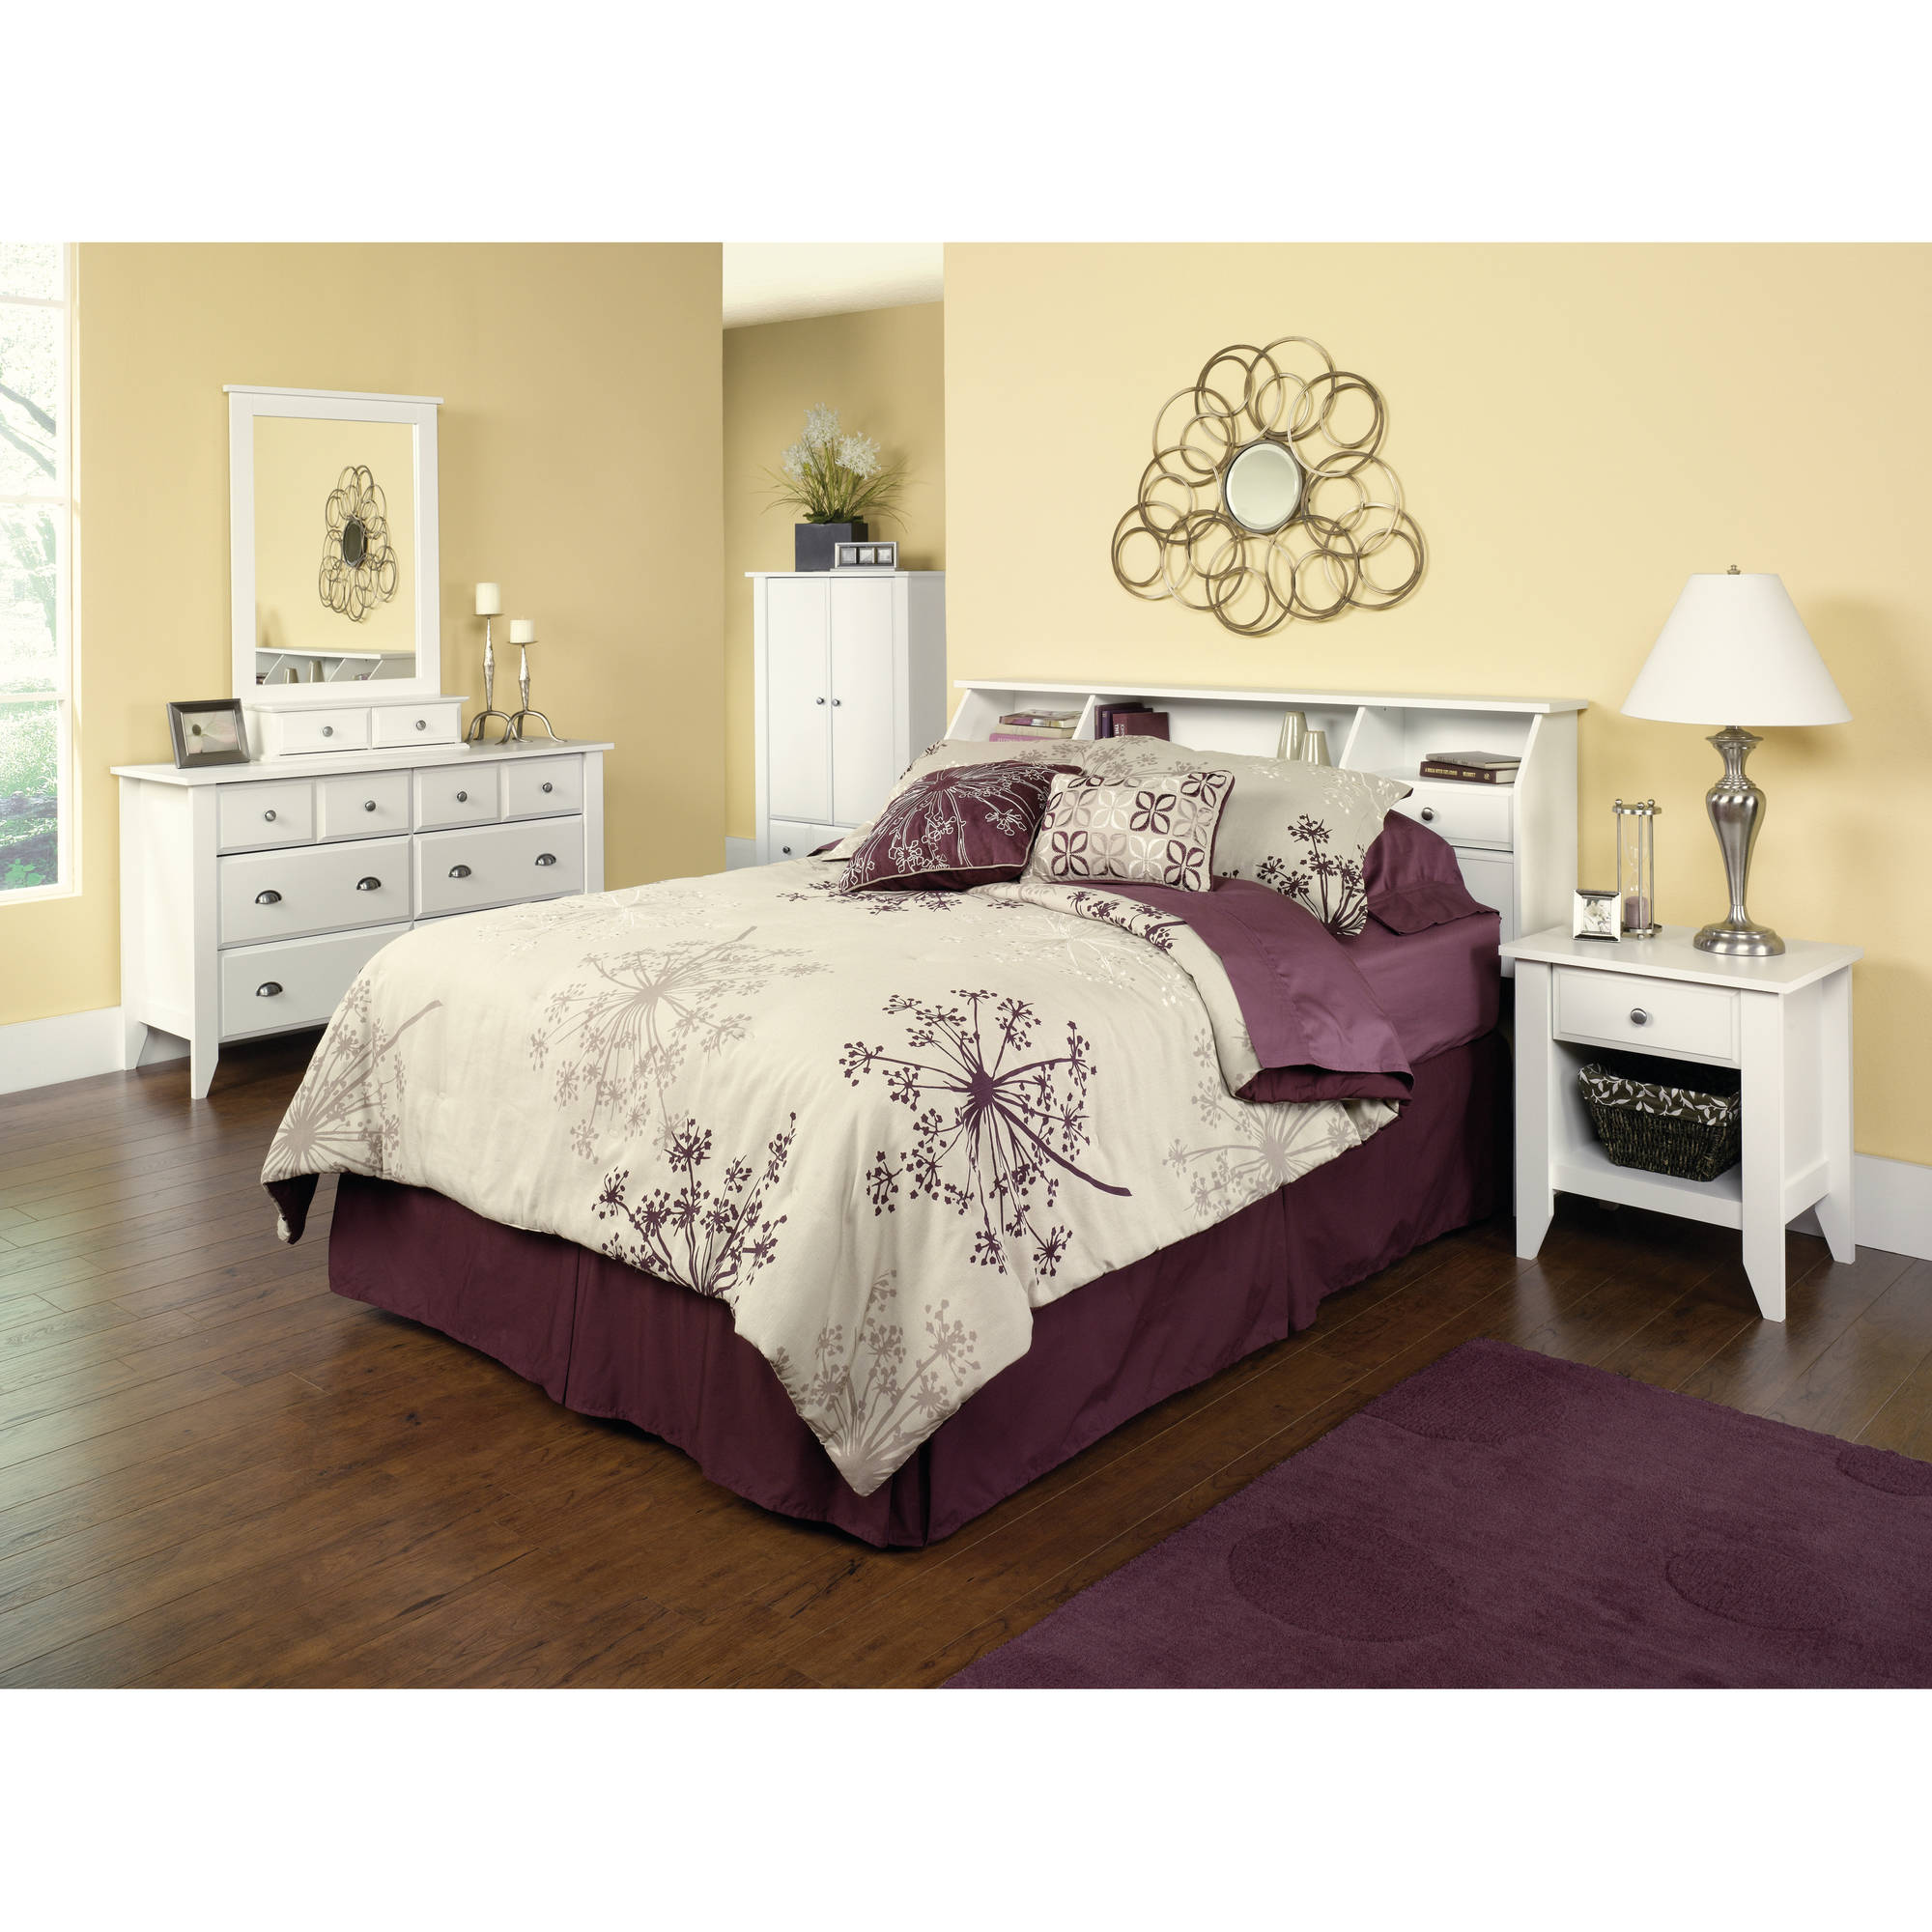 Sauder Shoal Creek Soft White Furniture Collection